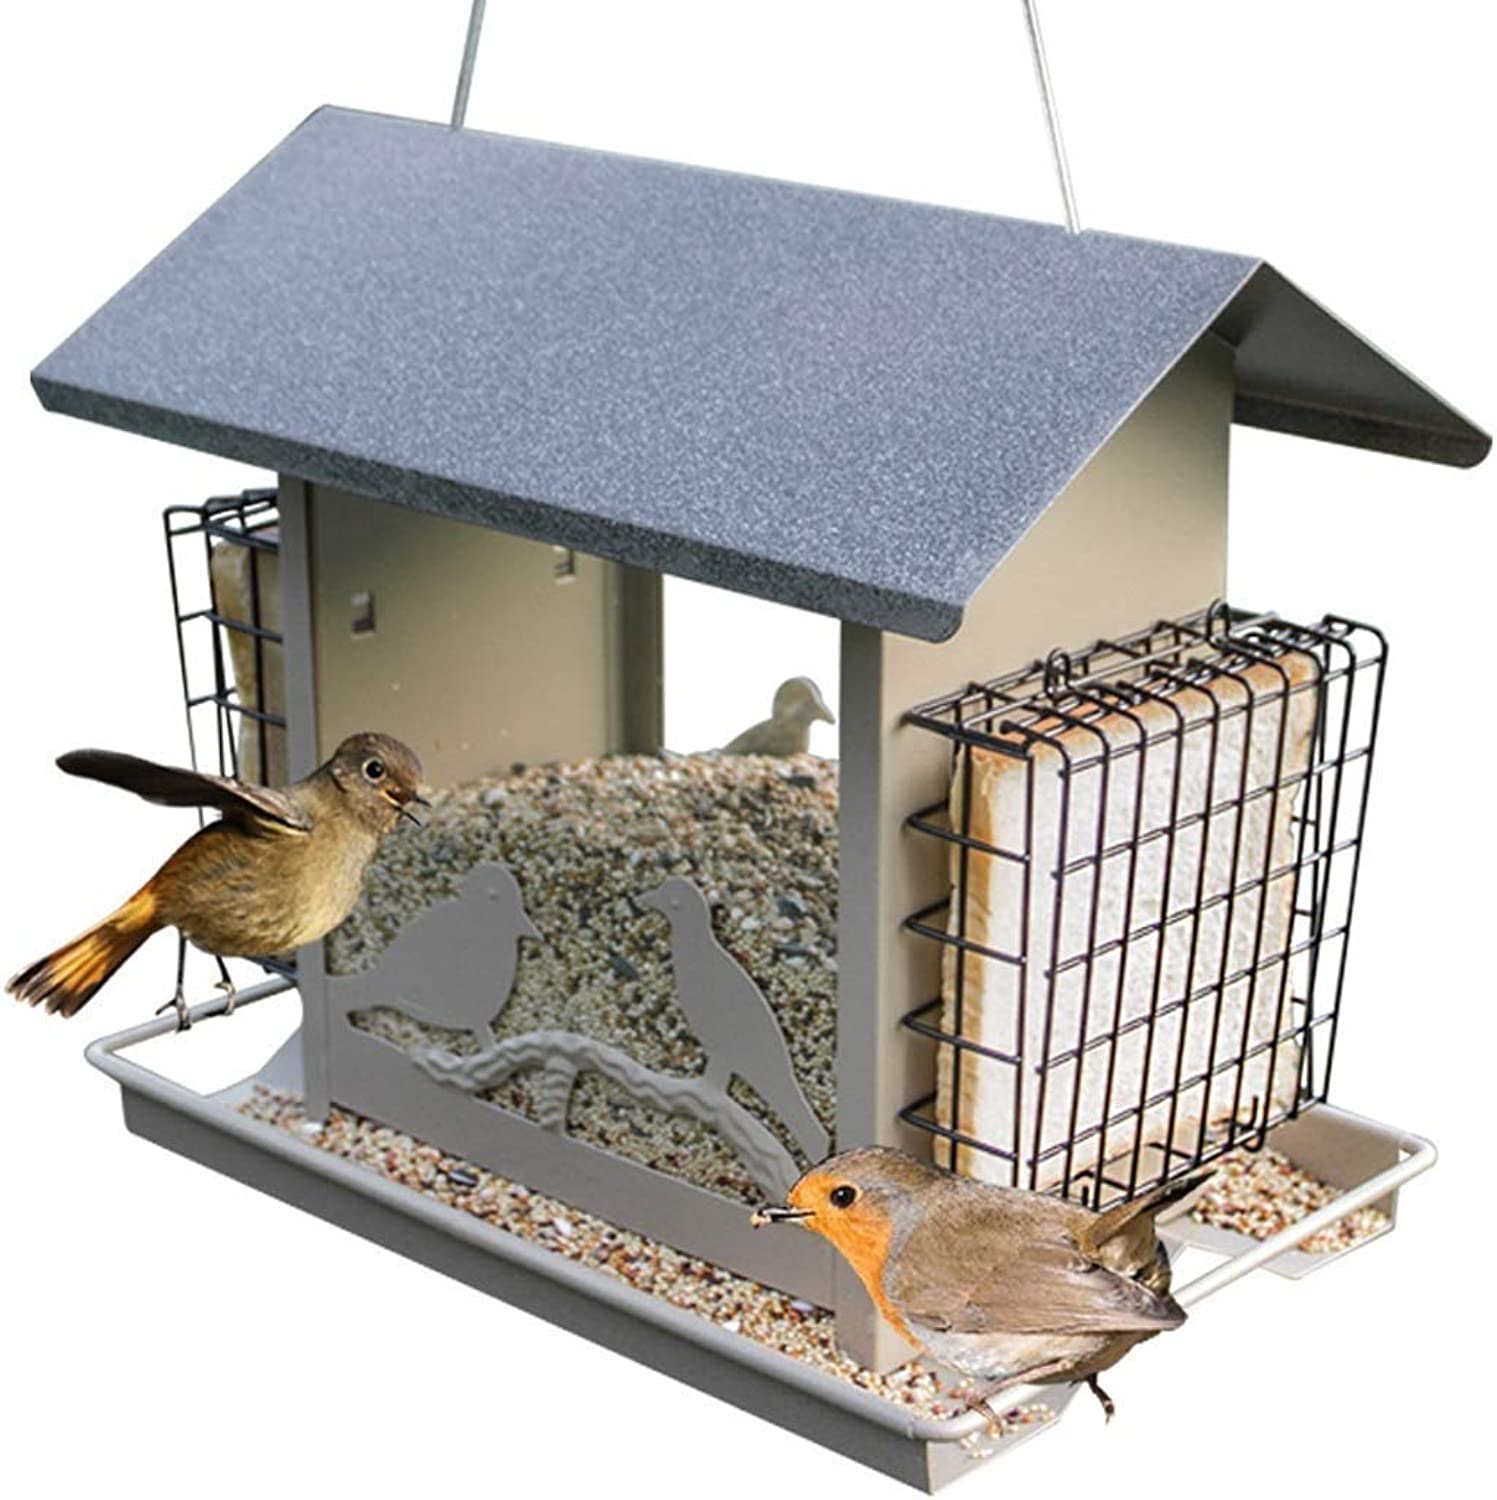 Feeder Hanging Wild Bird Garden, Feeding Bird Standing Hanging Seeds And Nut